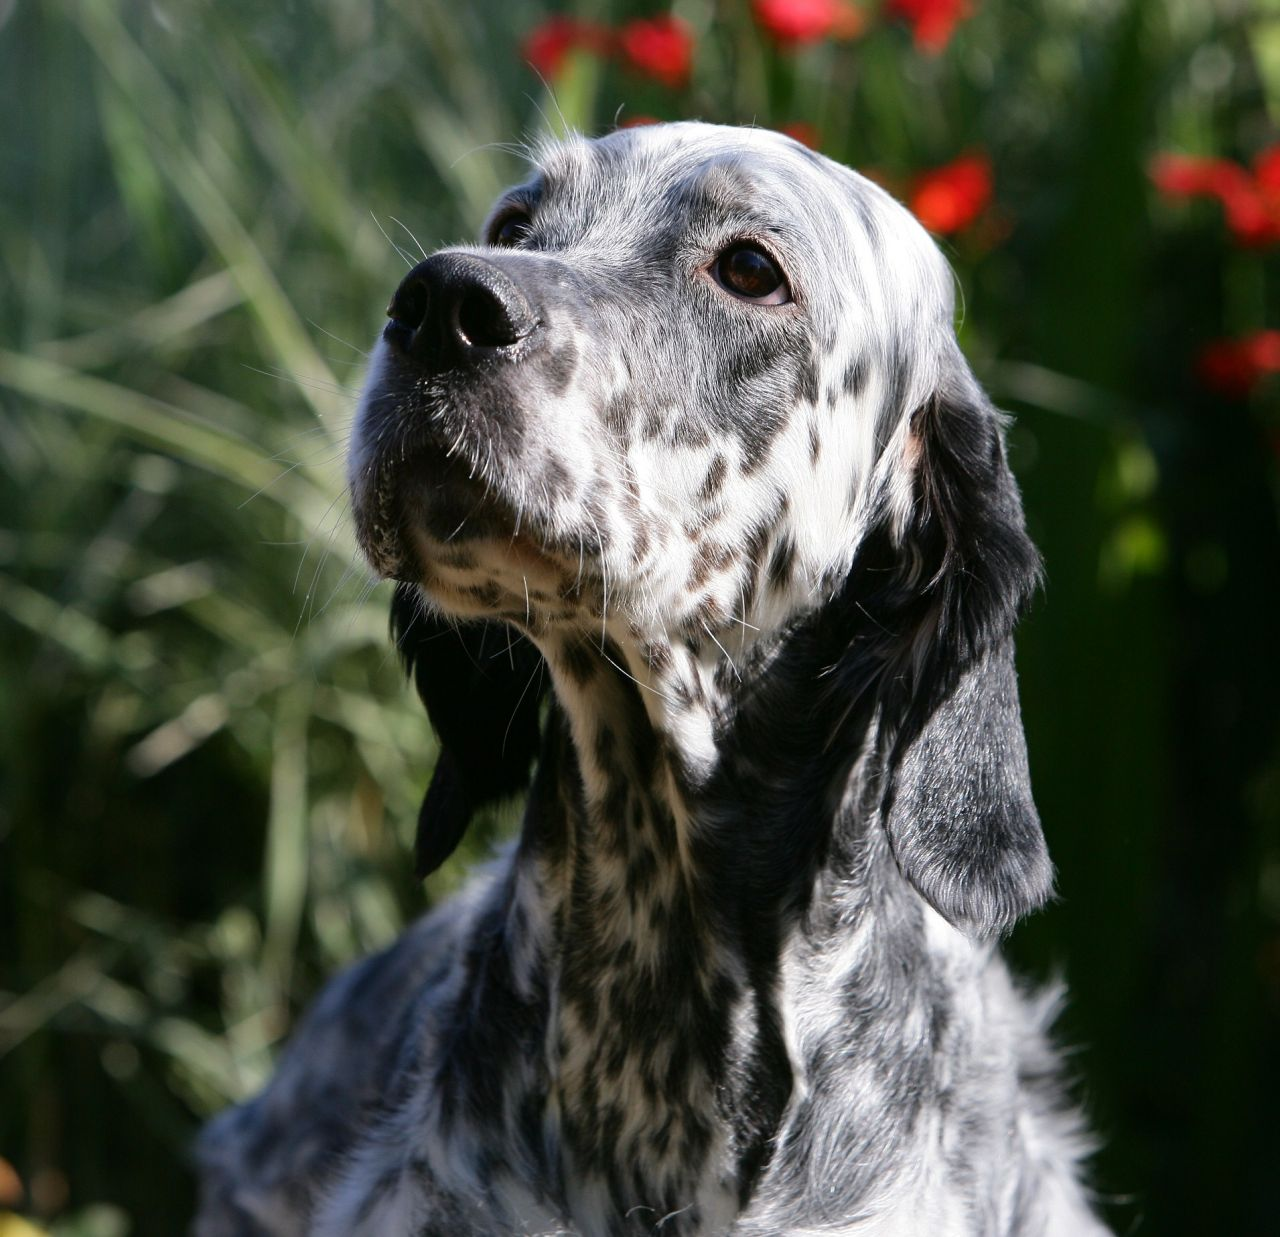 English Setter Puppies: English English Setter Puppies For Sale Coleford Breed